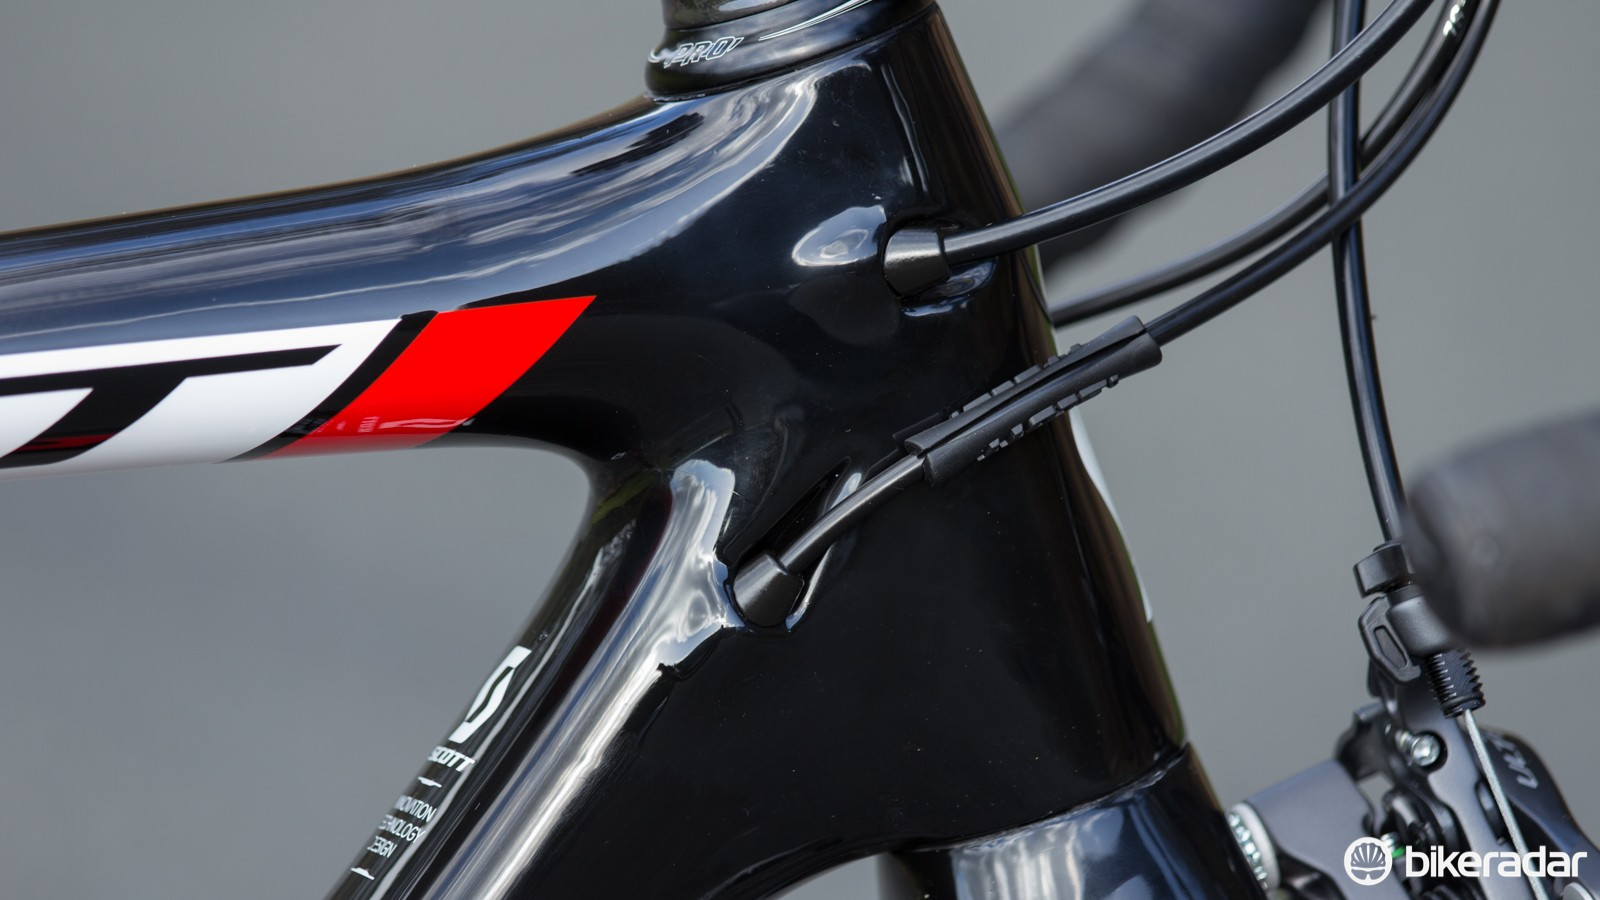 The internal cable routing on this frame is superb. Clean entry and exit points assist the shifting and braking, along with creating an elegant looking bike